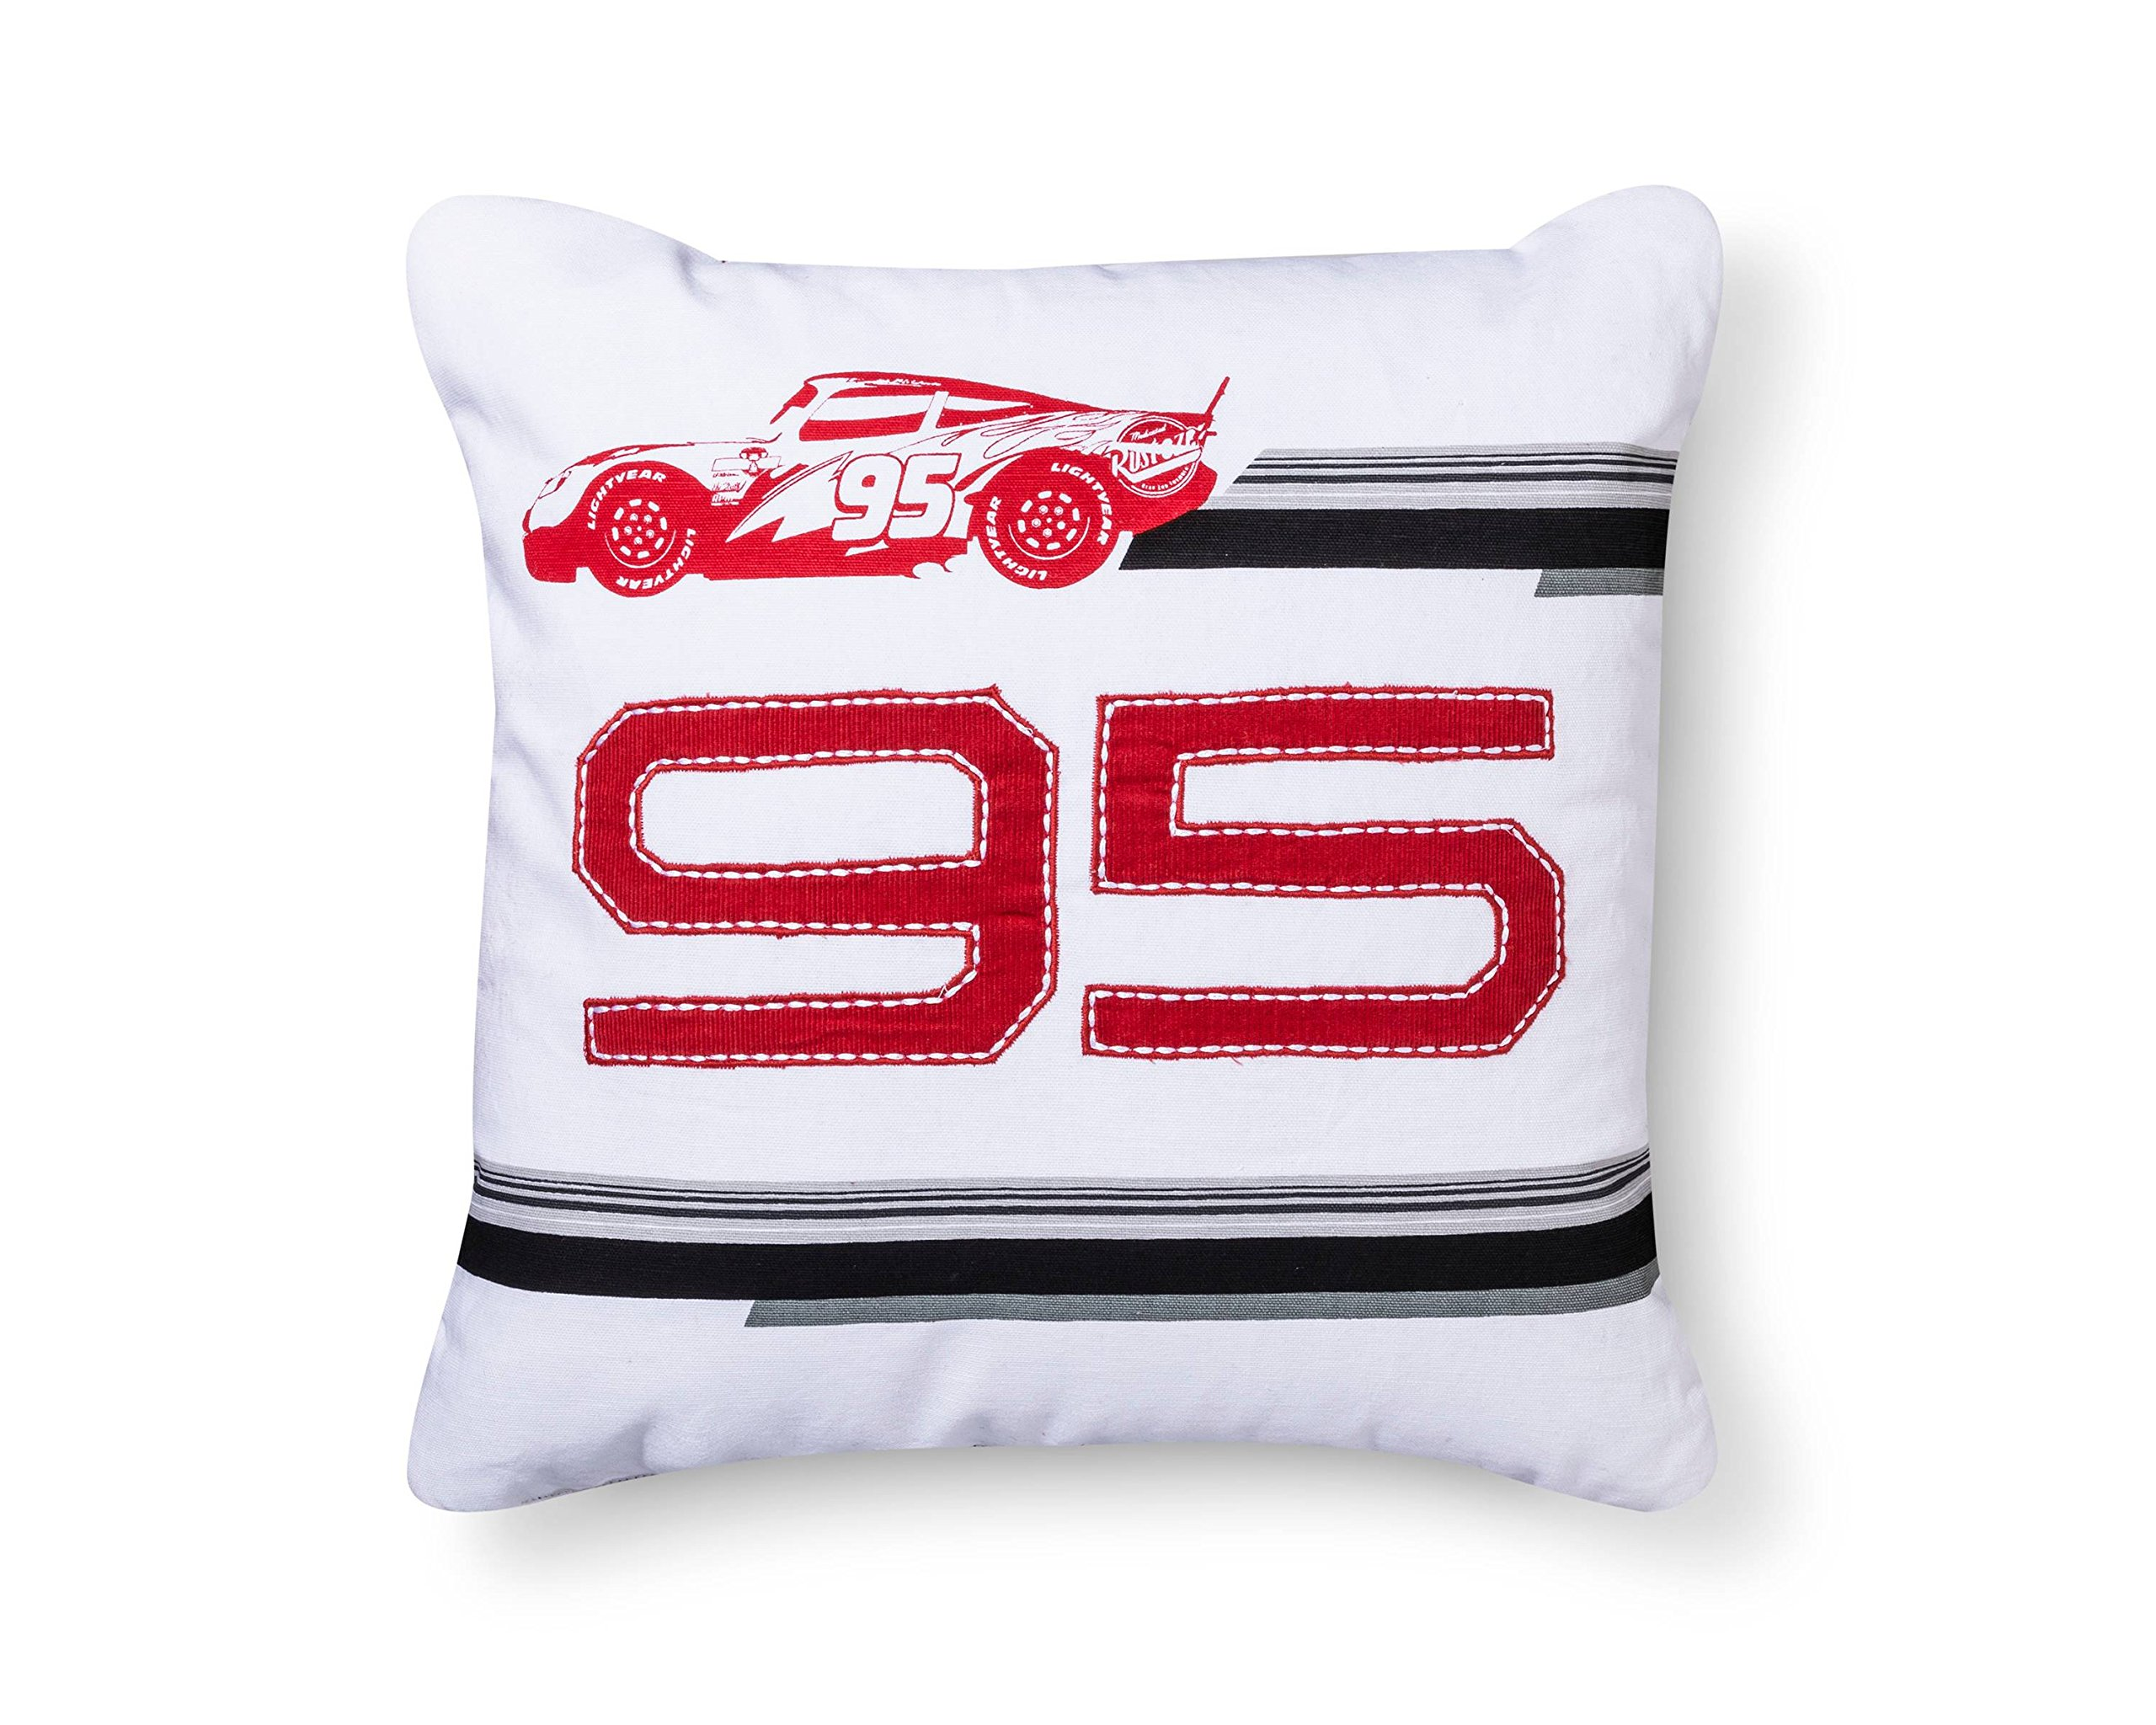 Disney Cars Lightning McQueen 95 White Throw Pillow (16''x16'') by Cars Lightning McQueen 95